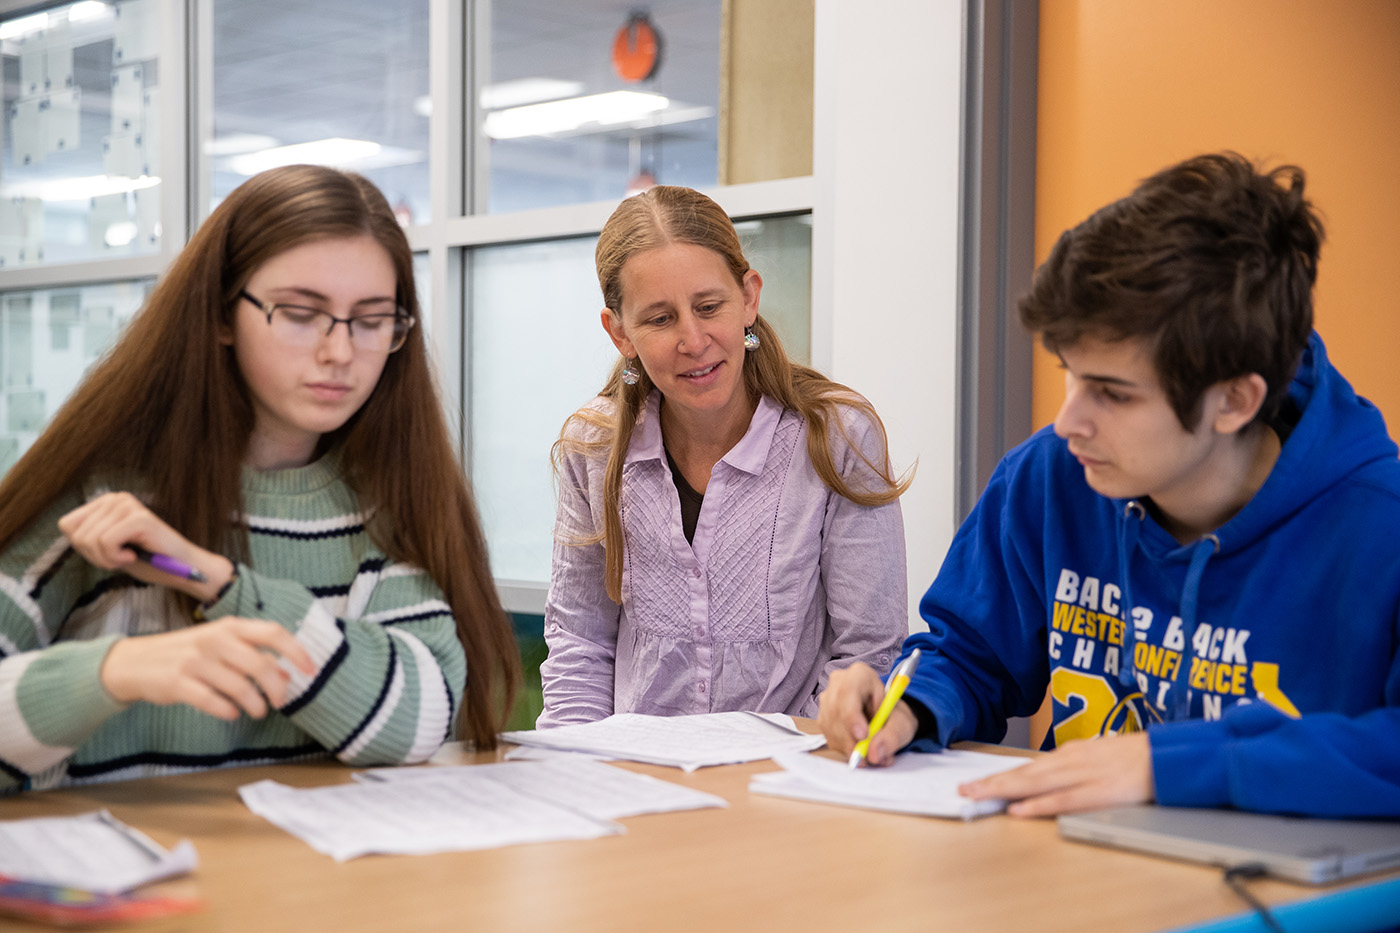 Dana Gundling sits between two students, smiling as they work.